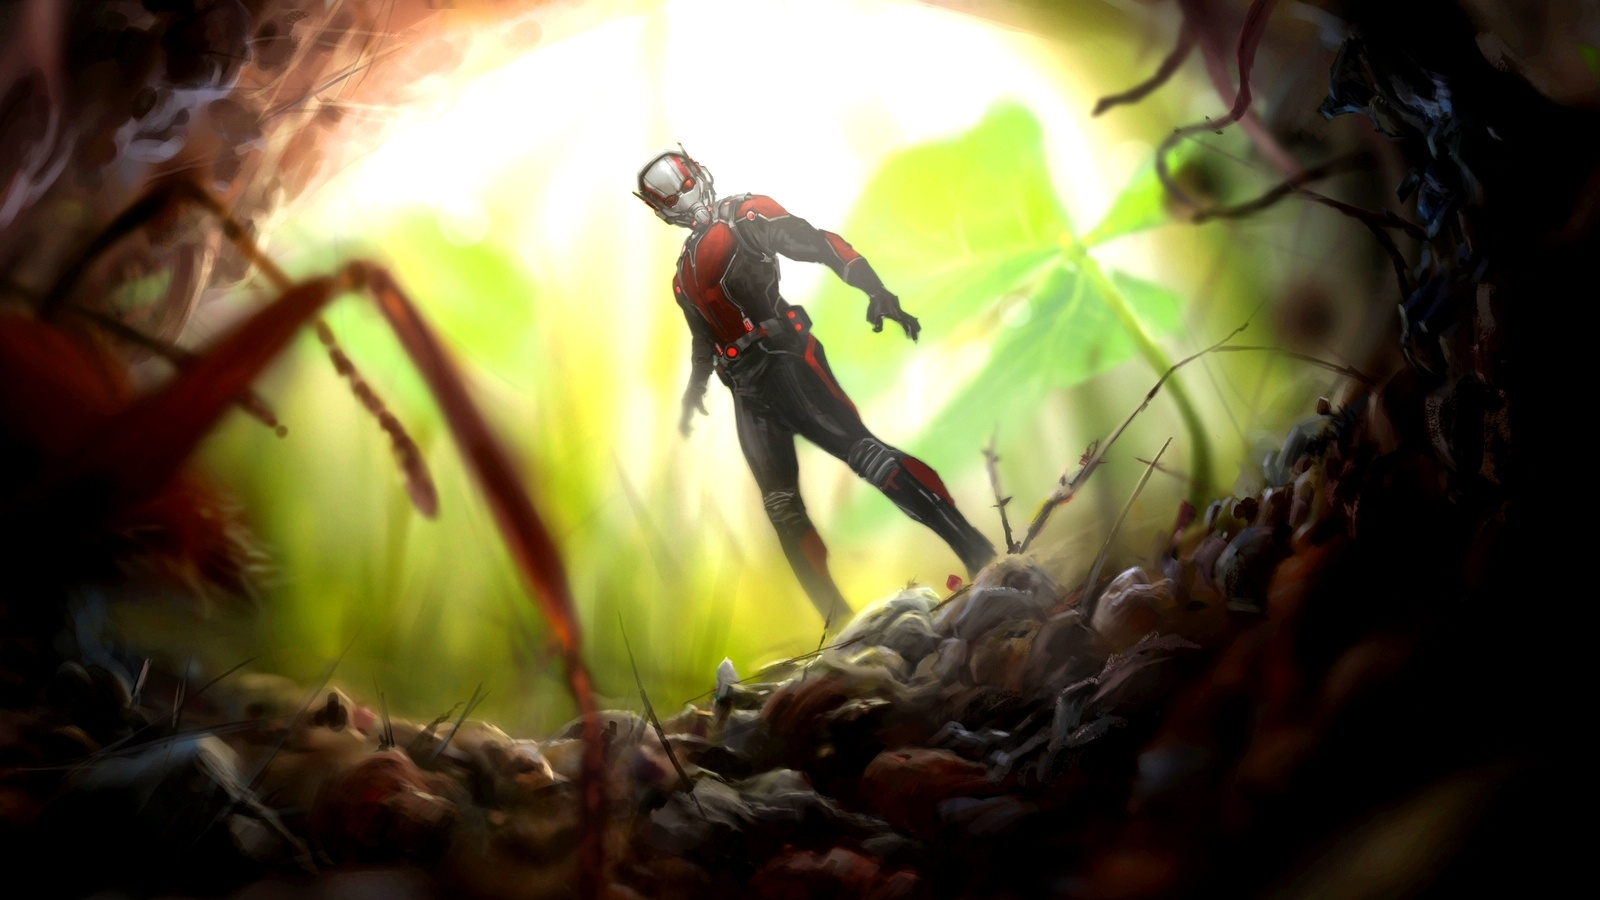 Ant Man 2015 Artworks Wallpapers   1600x900   288520 1600x900